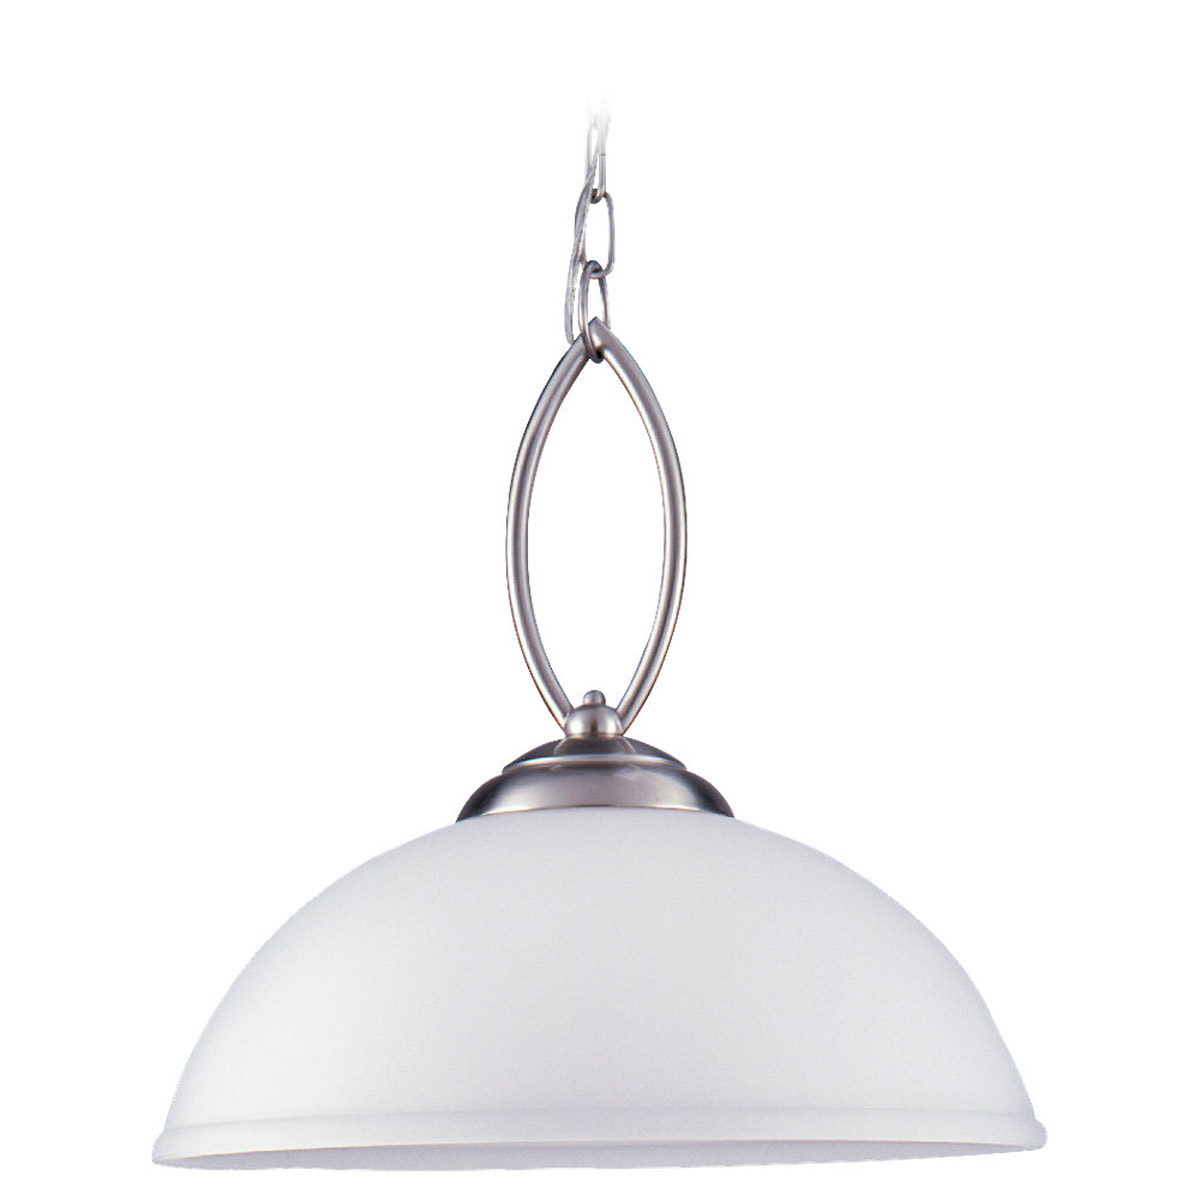 Sea Gull Lighting Pemberton 1 Light Pendant in Brushed Nickel 65074-962 photo